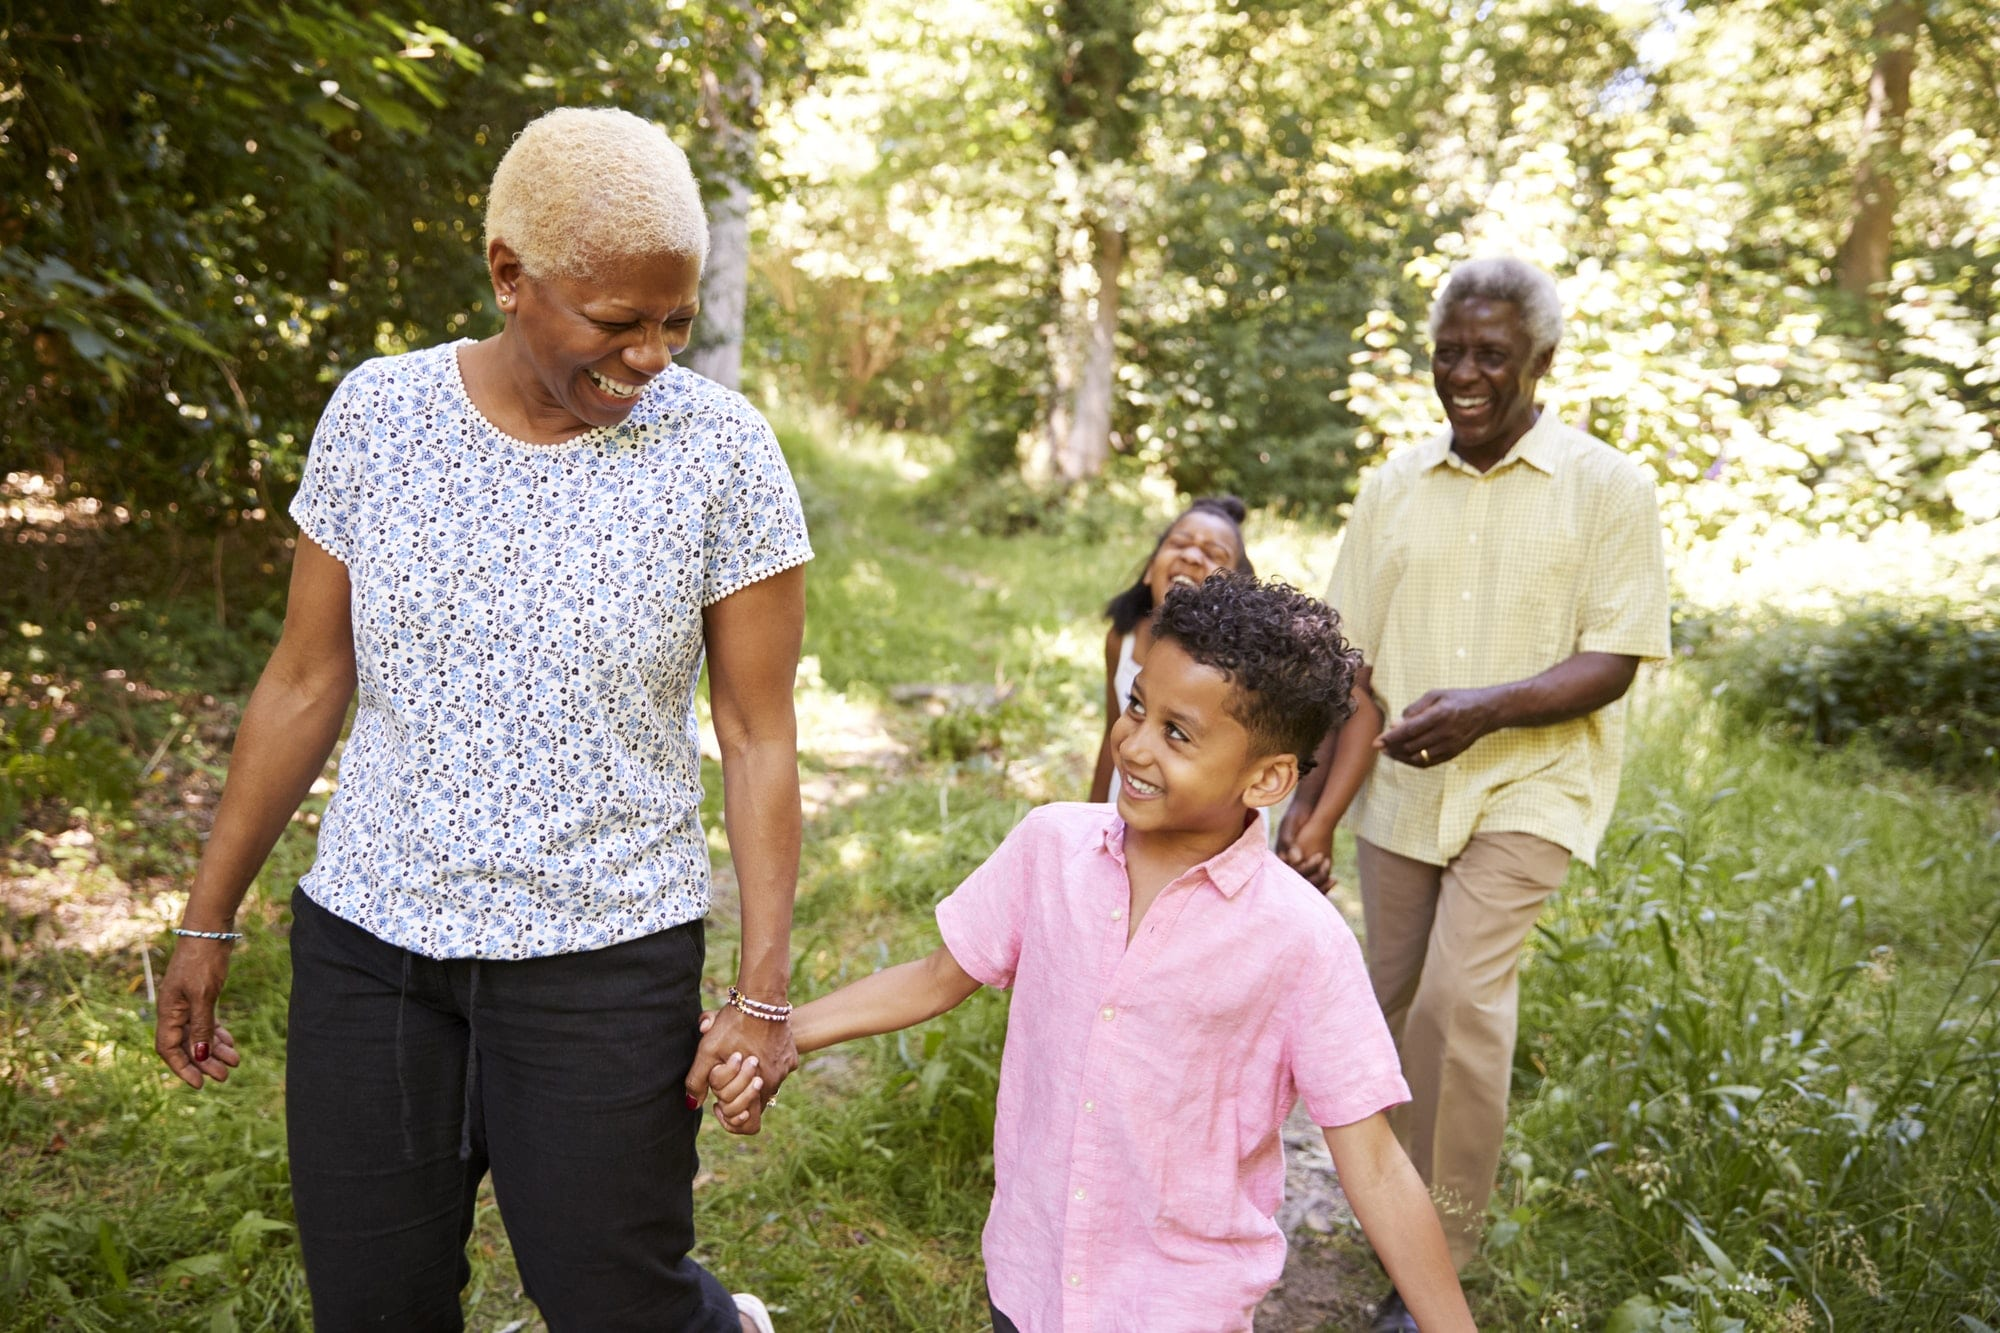 Black senior couple walking in forest with grandchildren